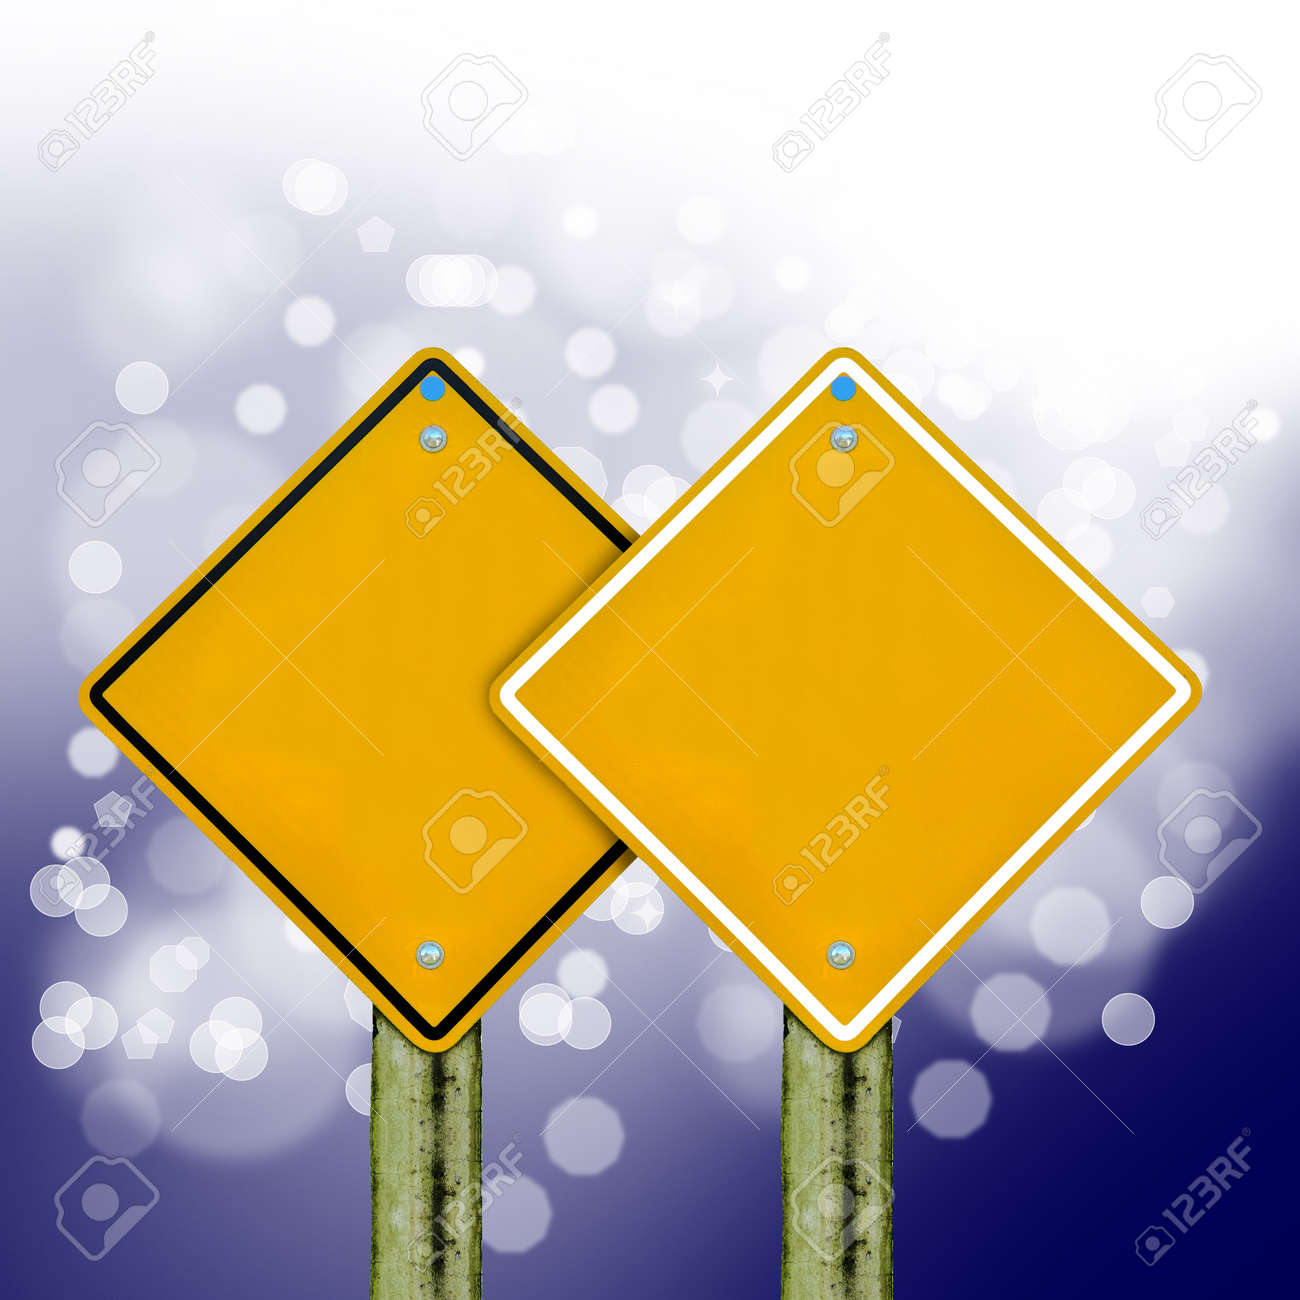 blank board with bokeh background,abstract sign,business symbol Stock Photo - 18296026